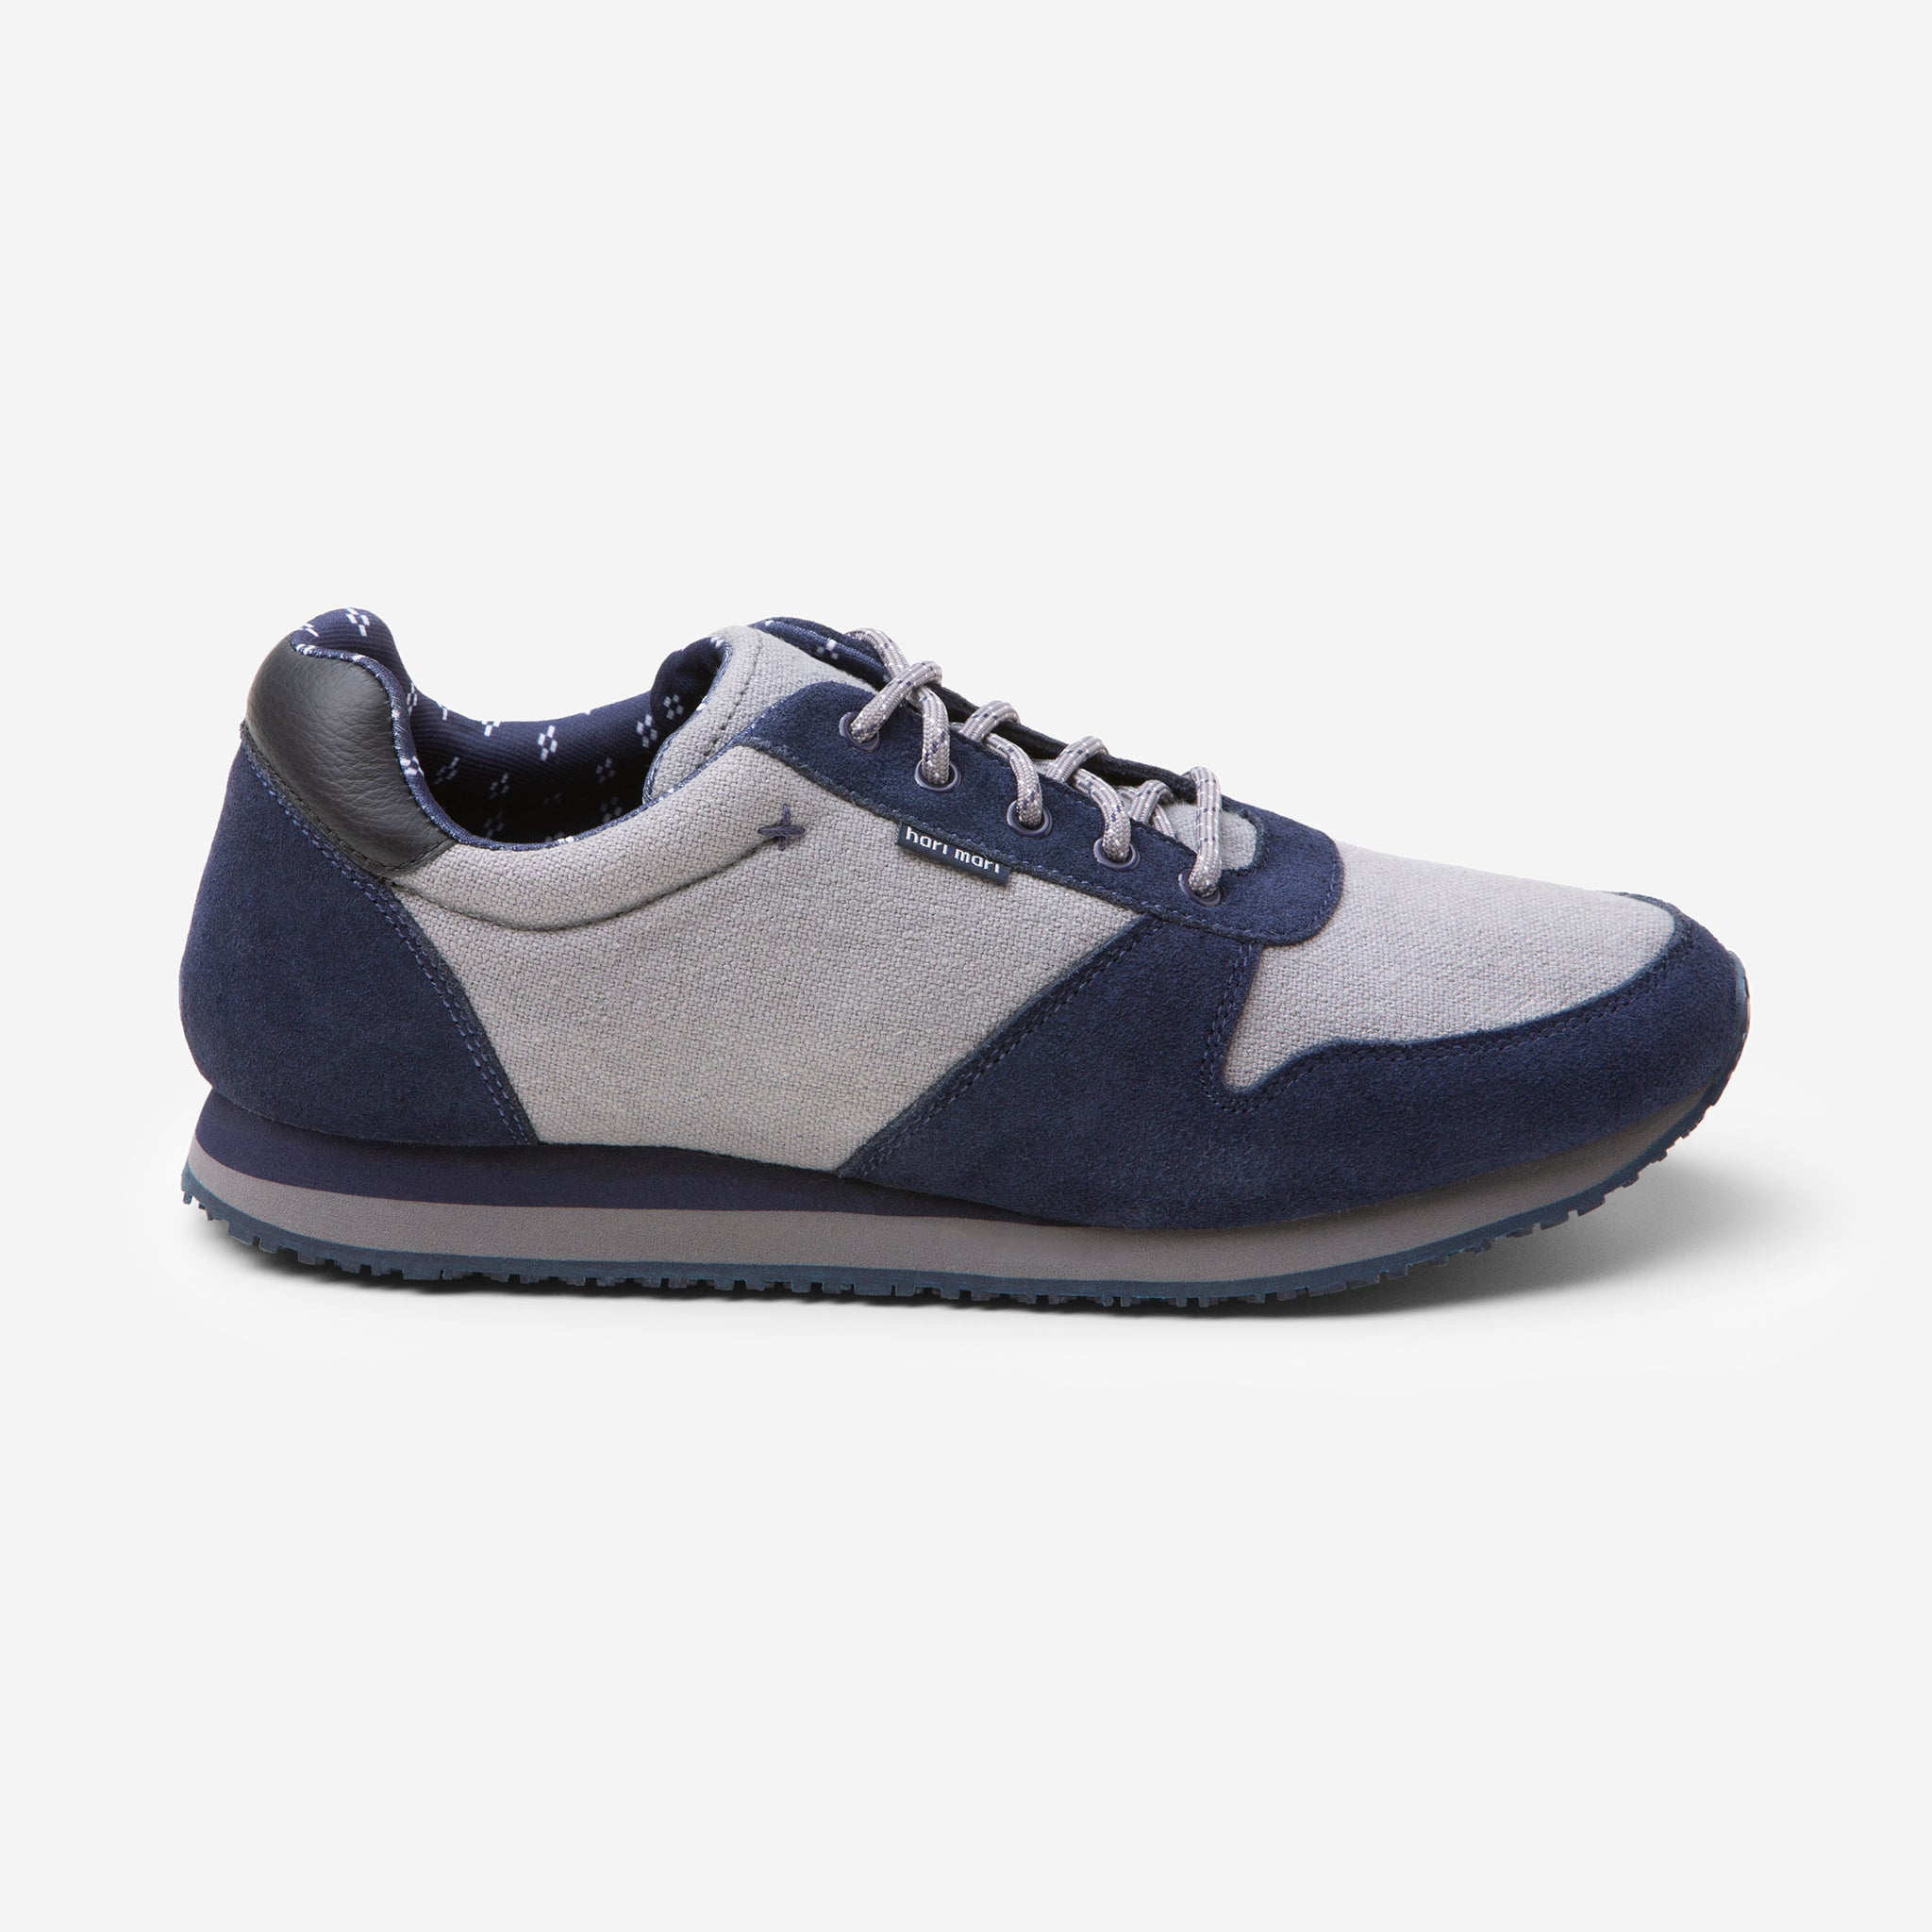 Dos Santos Retro Runner - Mens - Navy - Side View